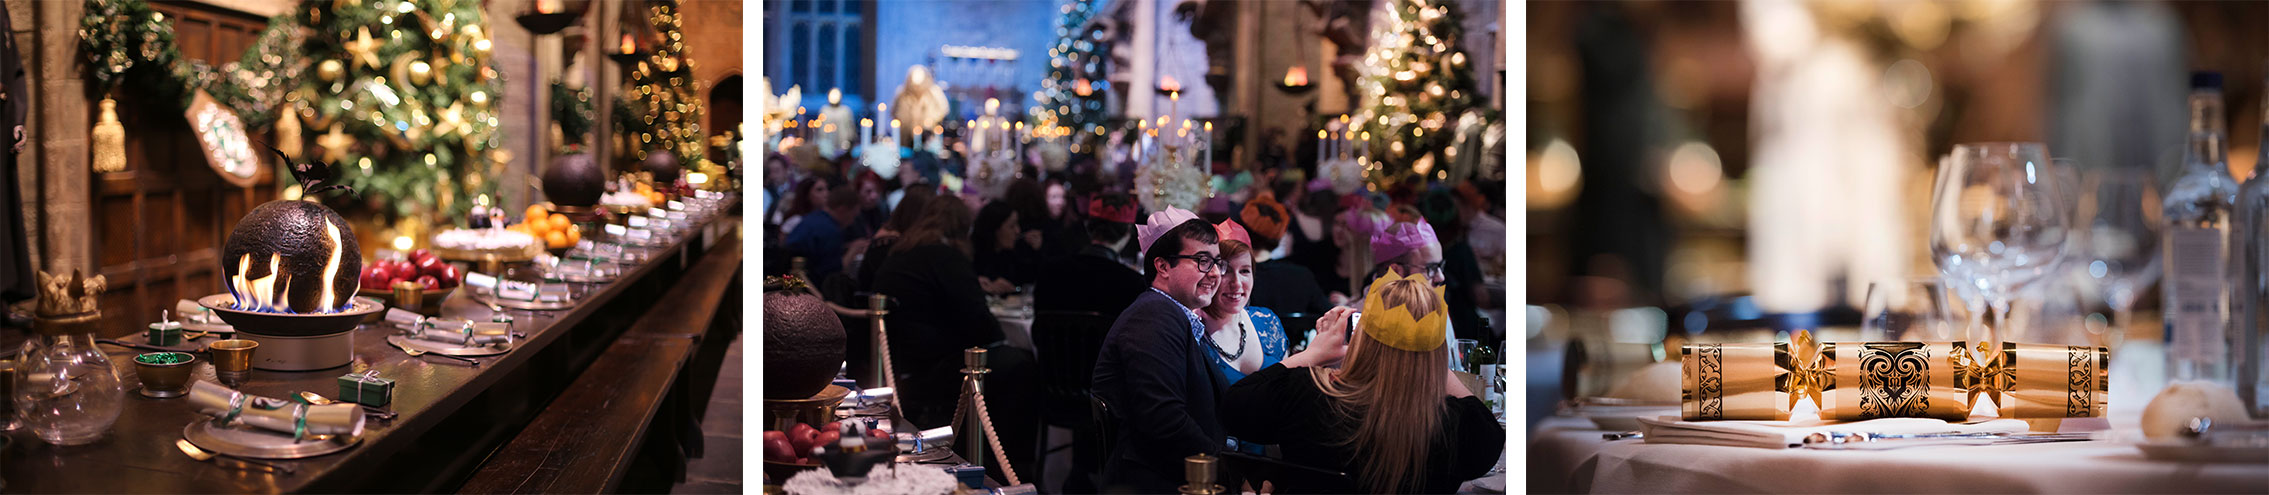 Dinner in the Great Hall